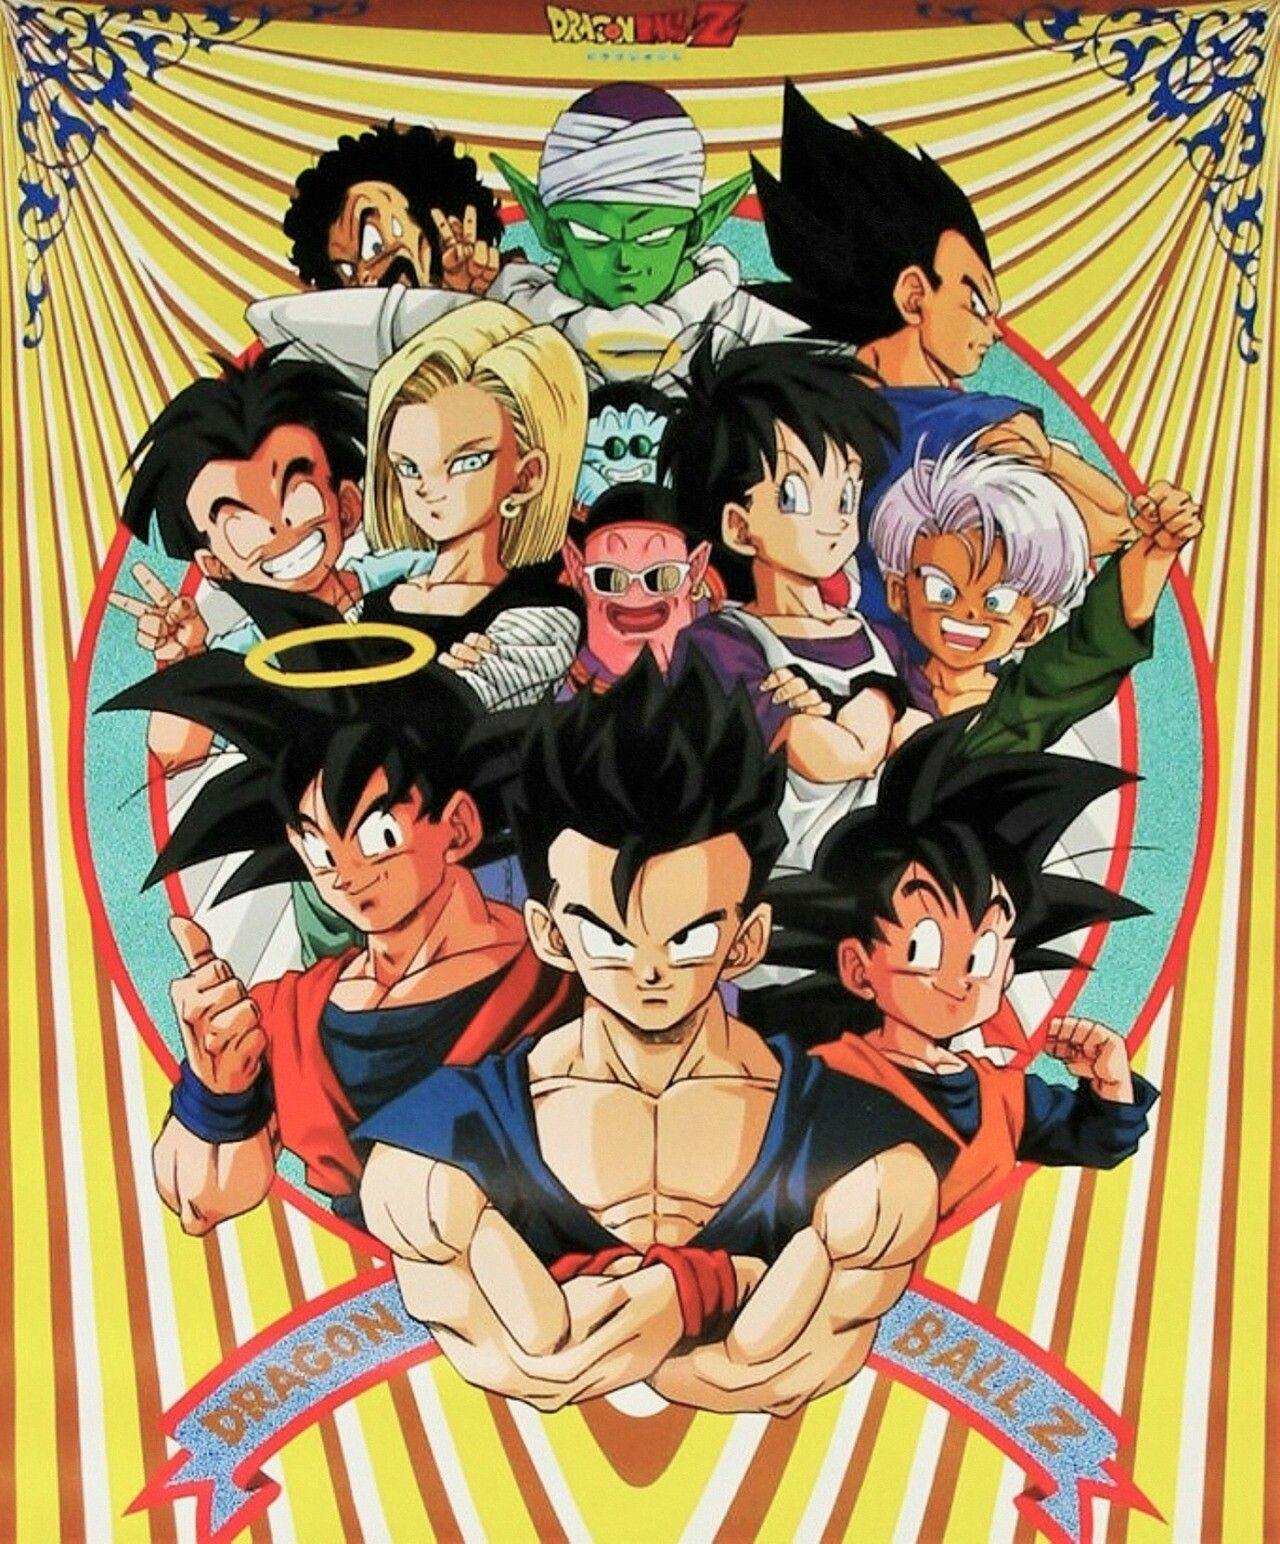 Gohan Goku Goten Trunks Videl Android 18 Krillin Piccolo Vegeta Hercule King Kai And South Kai